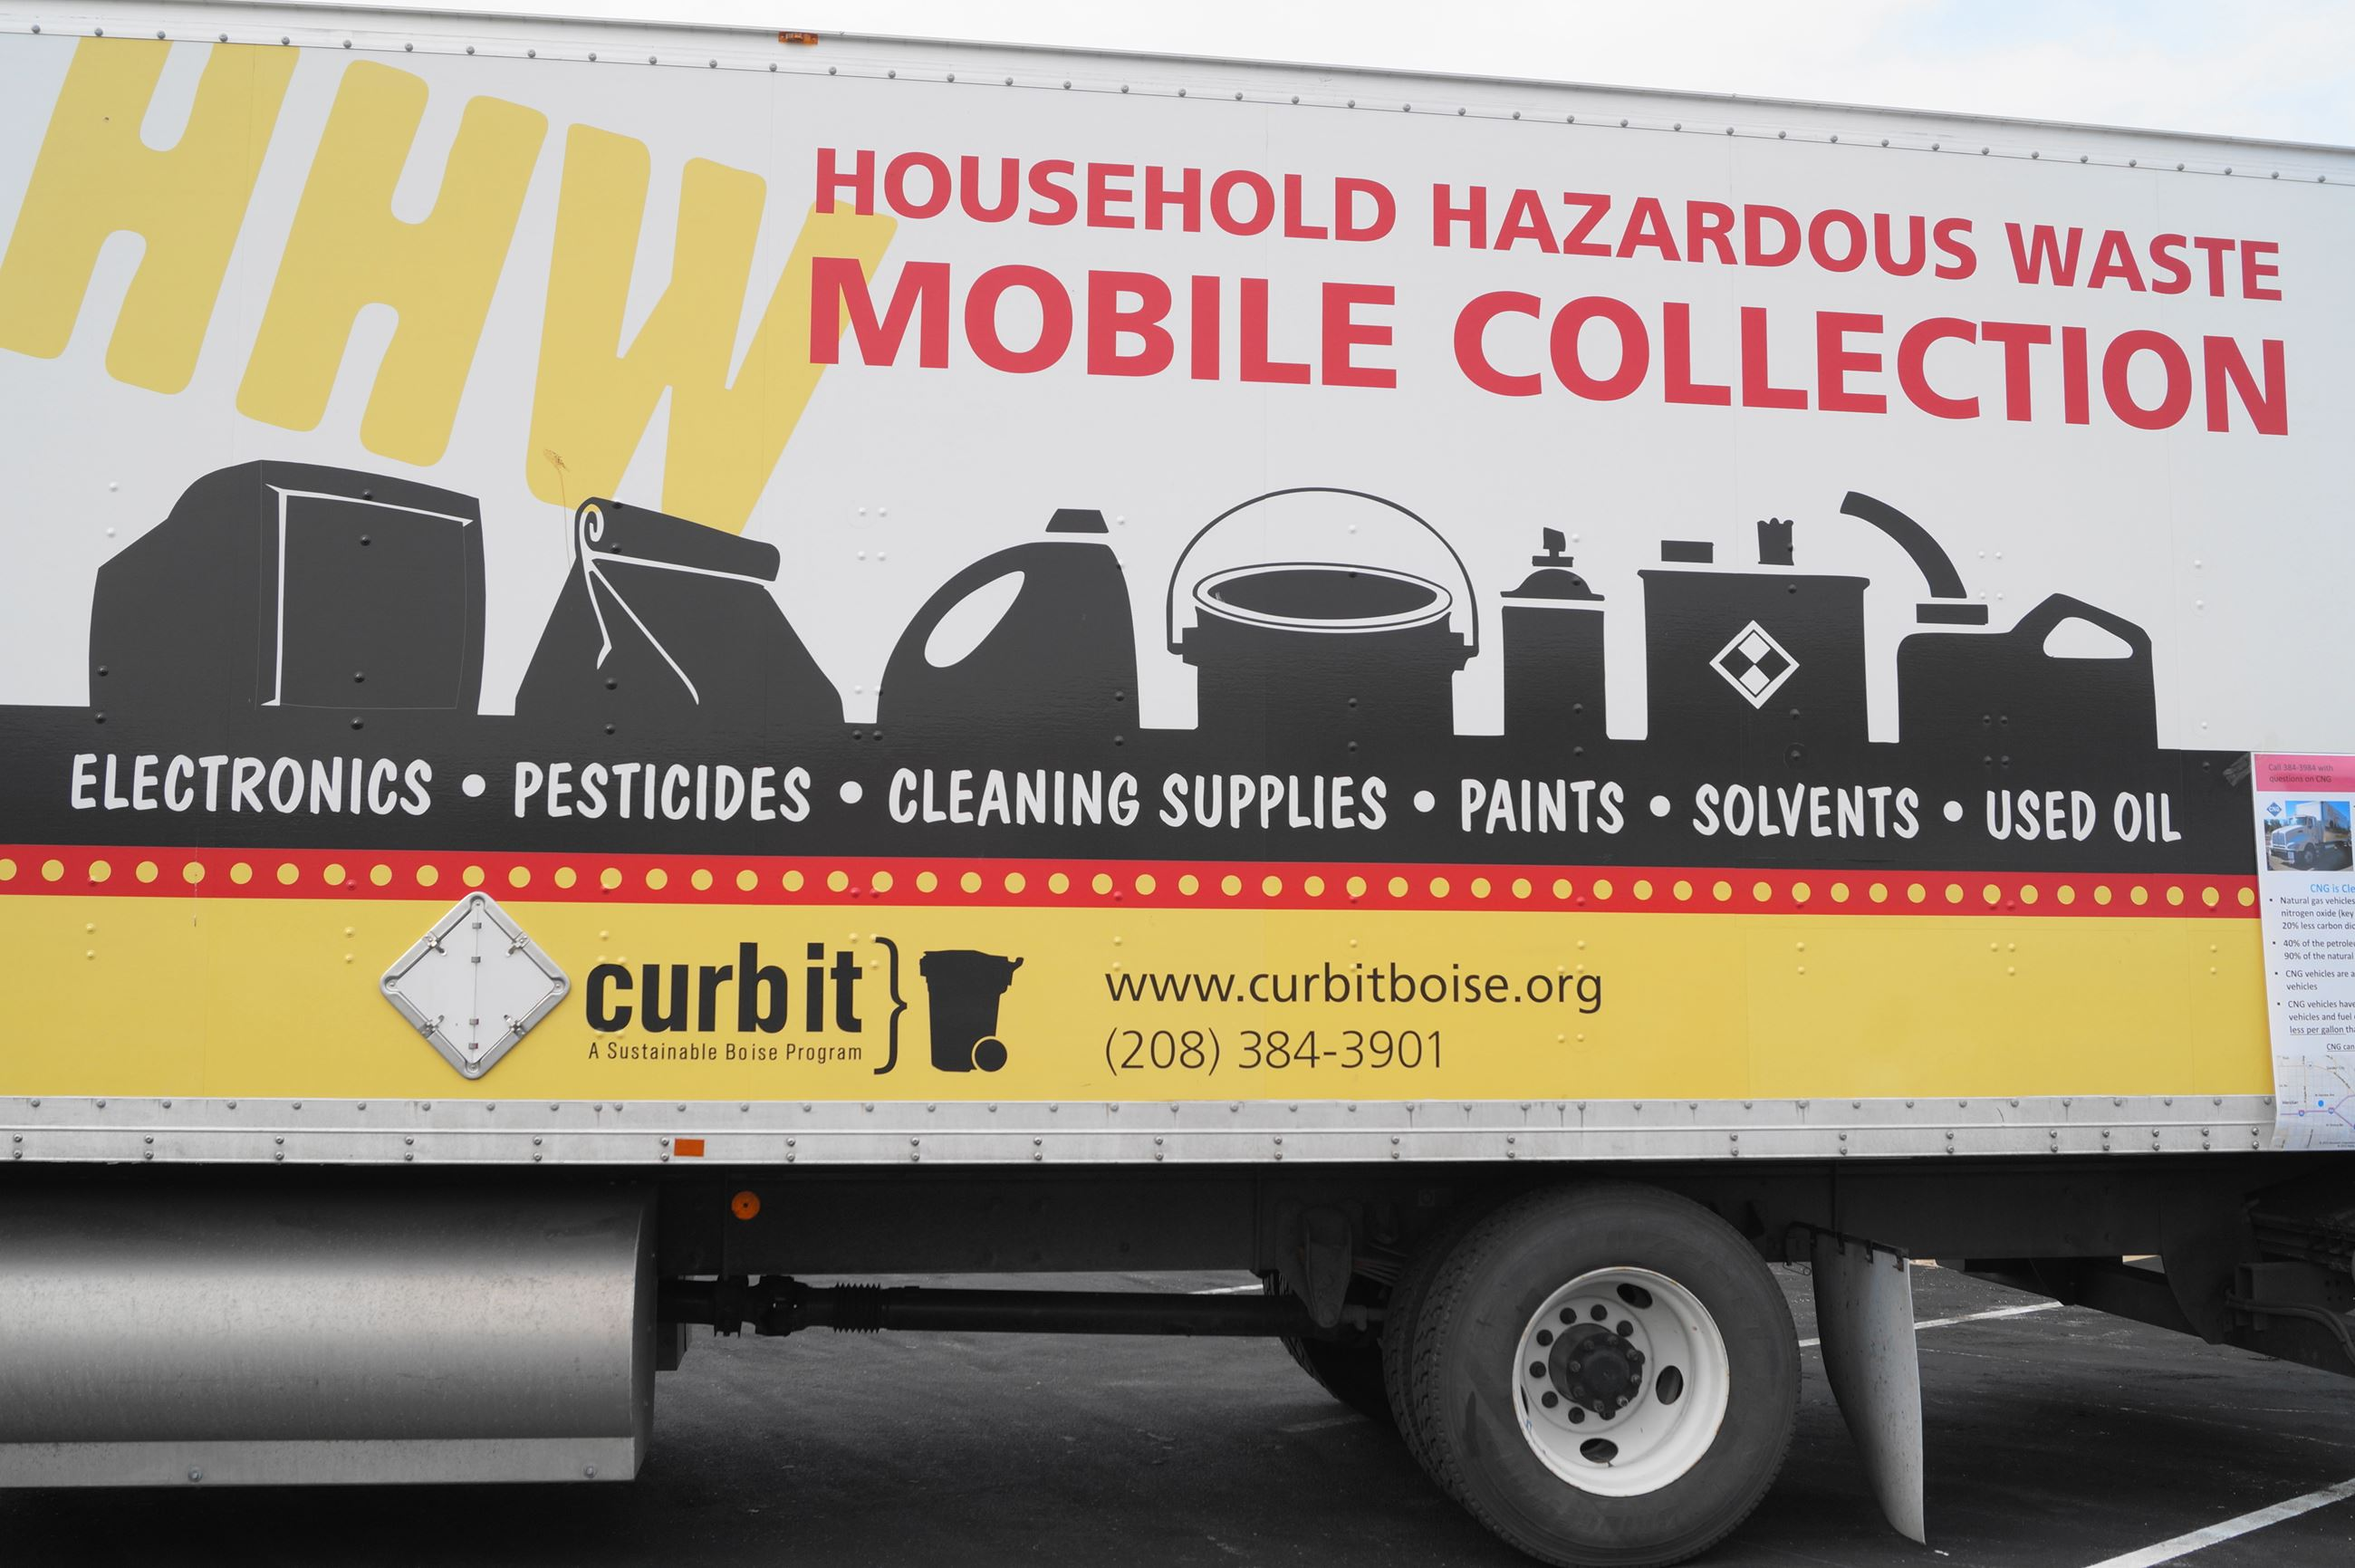 Household Hazardous Waste mobile collection truck